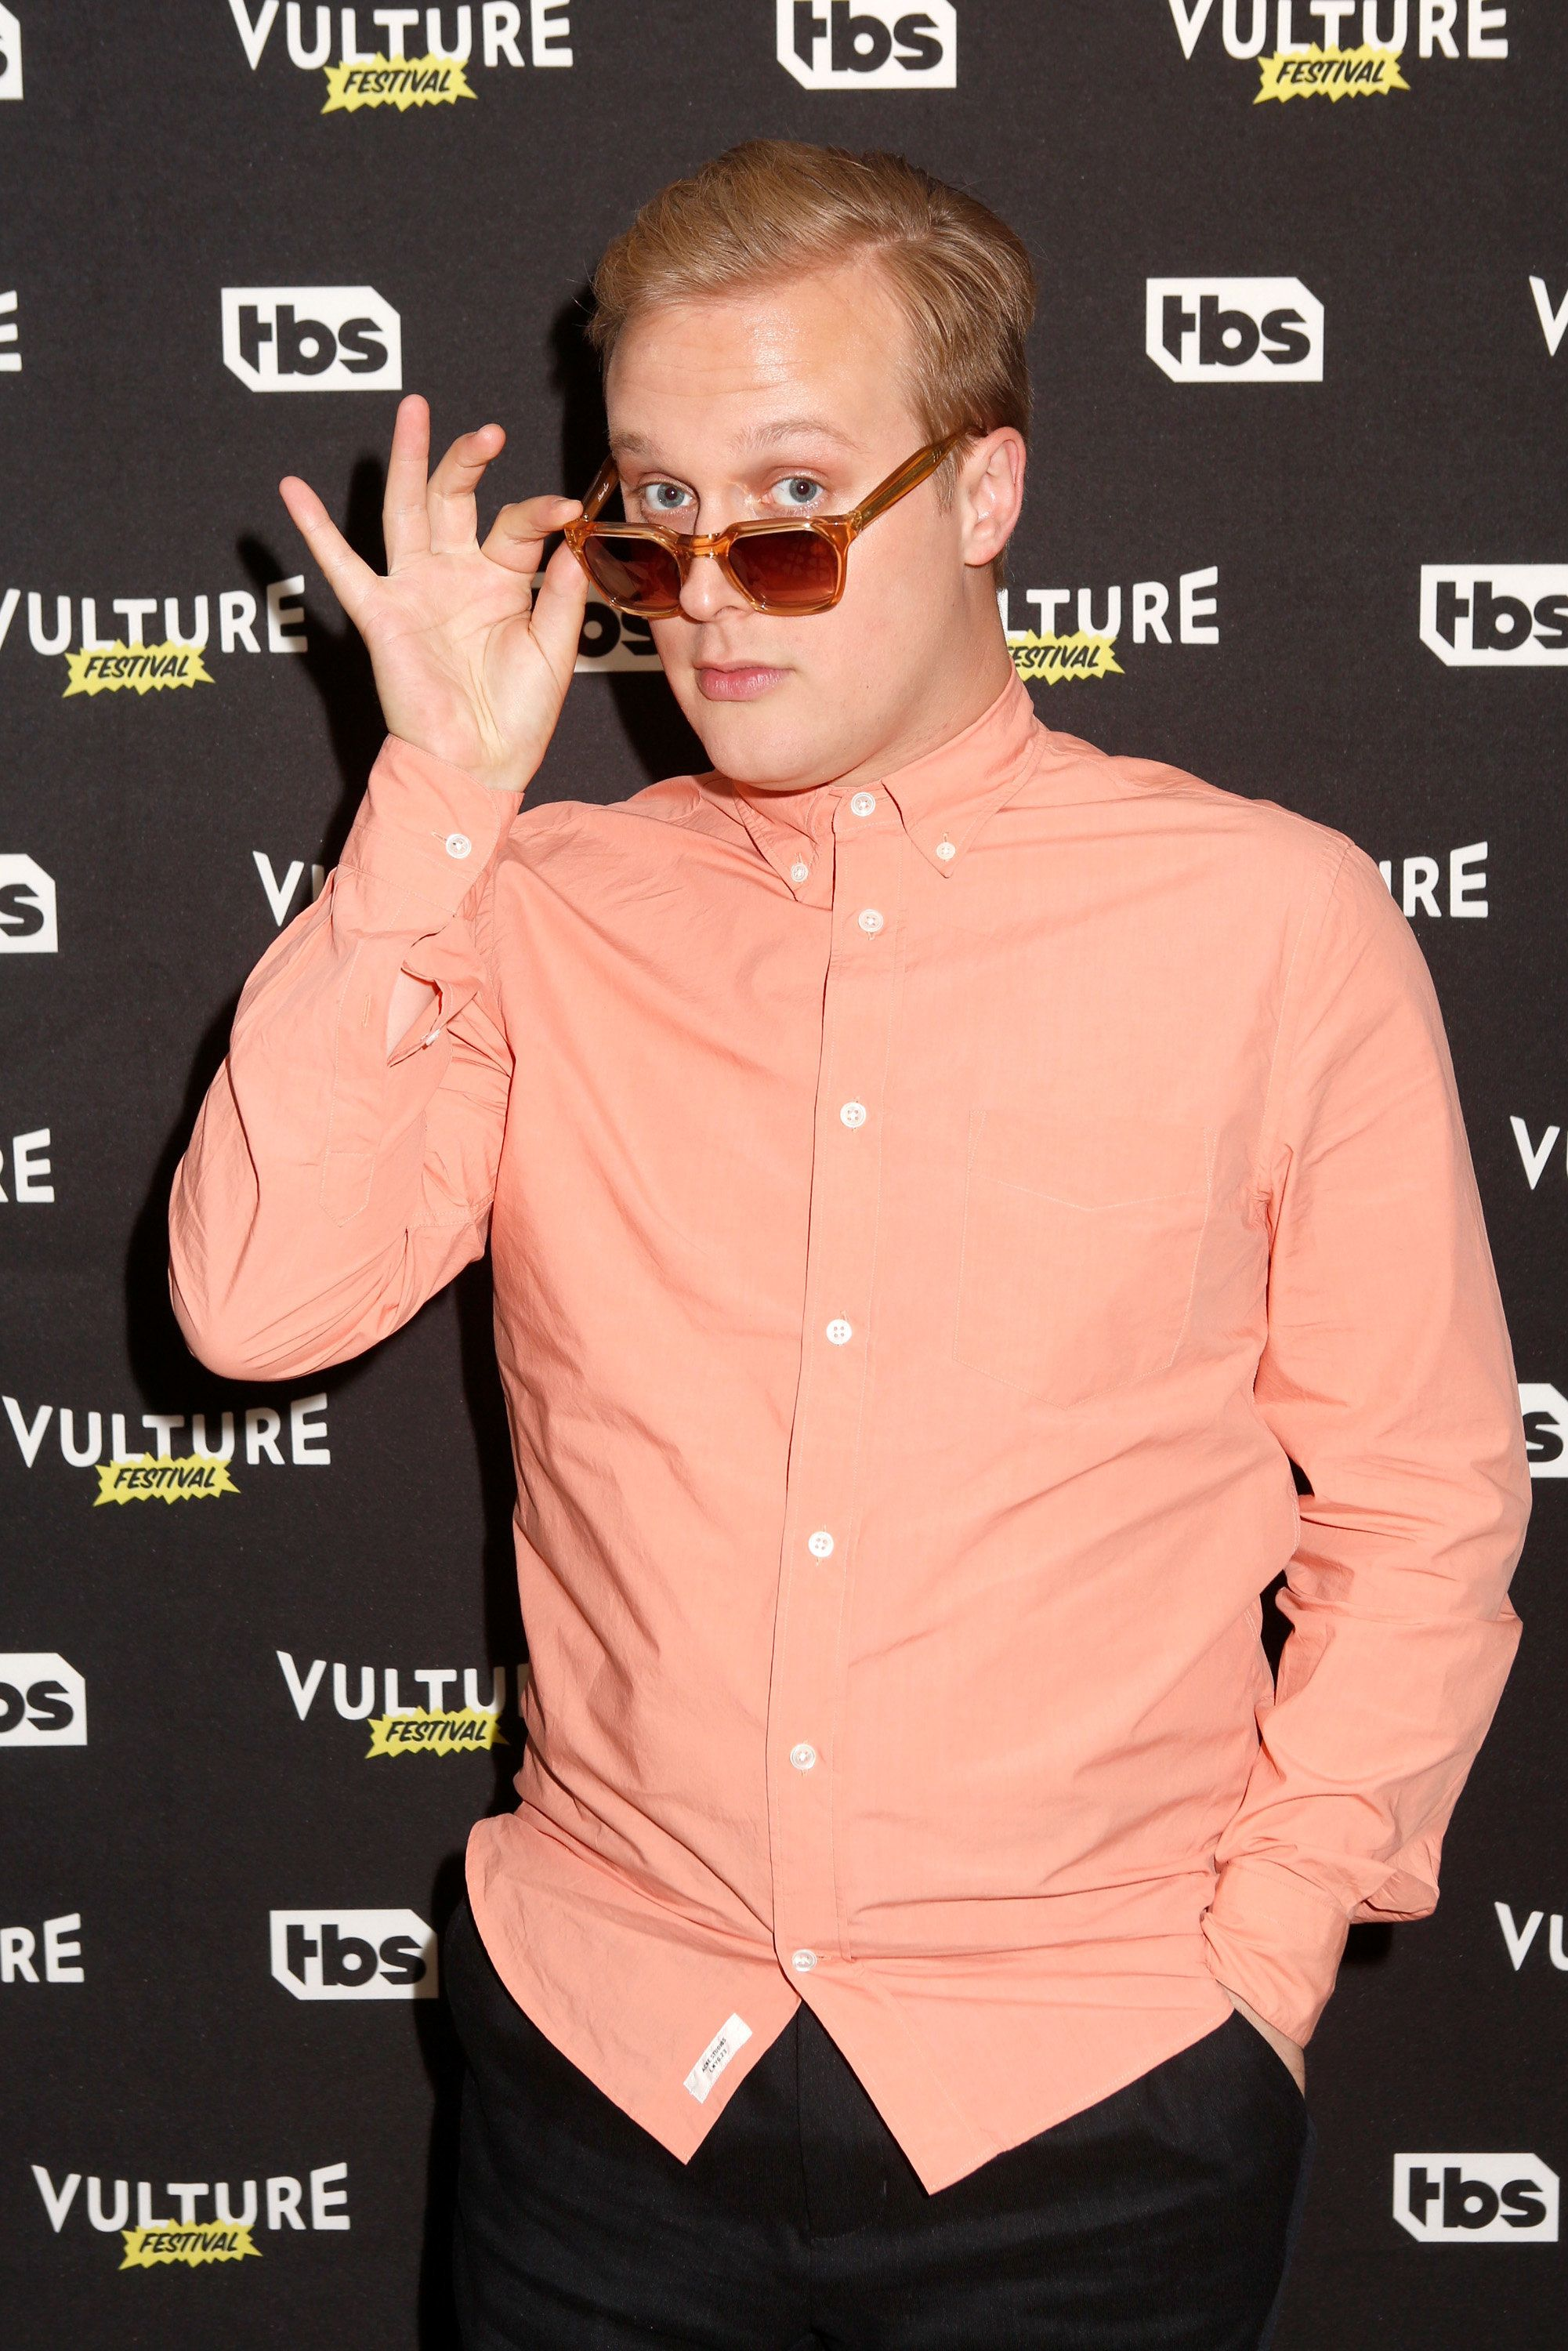 NEW YORK, NY - MAY 22:  John Early attends the TBS Screening of Search Party during the 2016 Vulture Festival at the Crosby Street Hotel on May 22, 2016 in New York City.  (Photo by Thos Robinson/Getty Images for Vulture Festival)